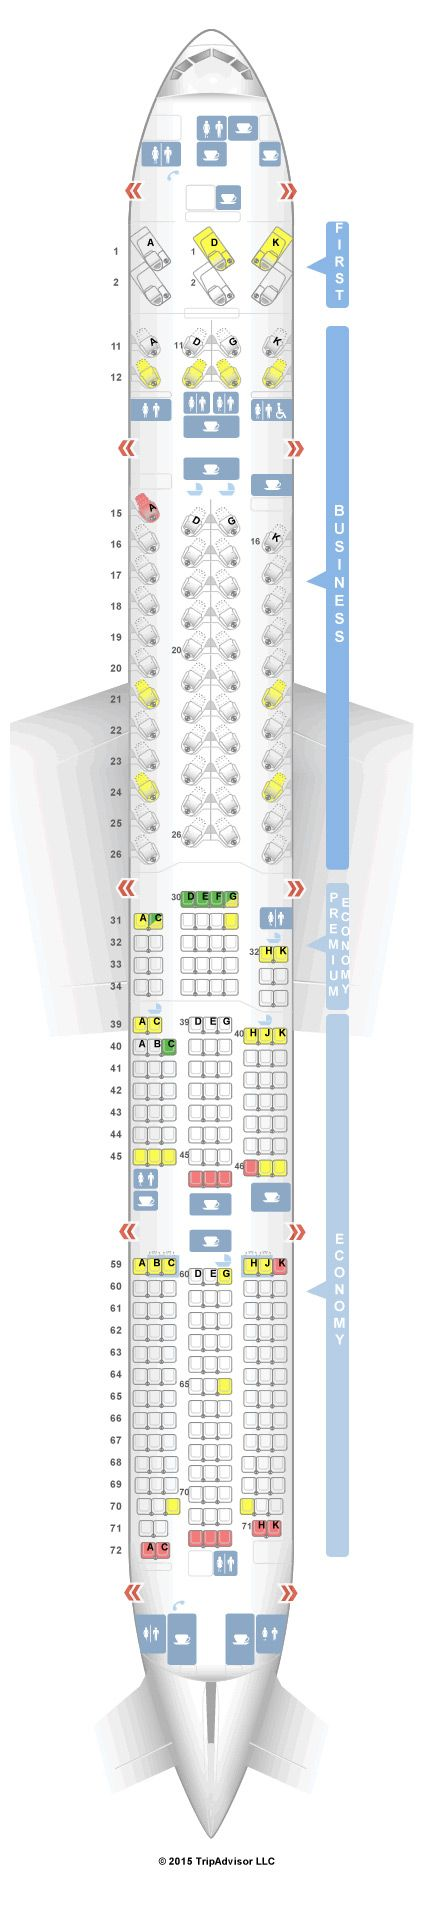 Cathay Pacific Seat Map SeatGuru Seat Map Cathay Pacific Boeing 777 300ER (77H) Four Class  Cathay Pacific Seat Map